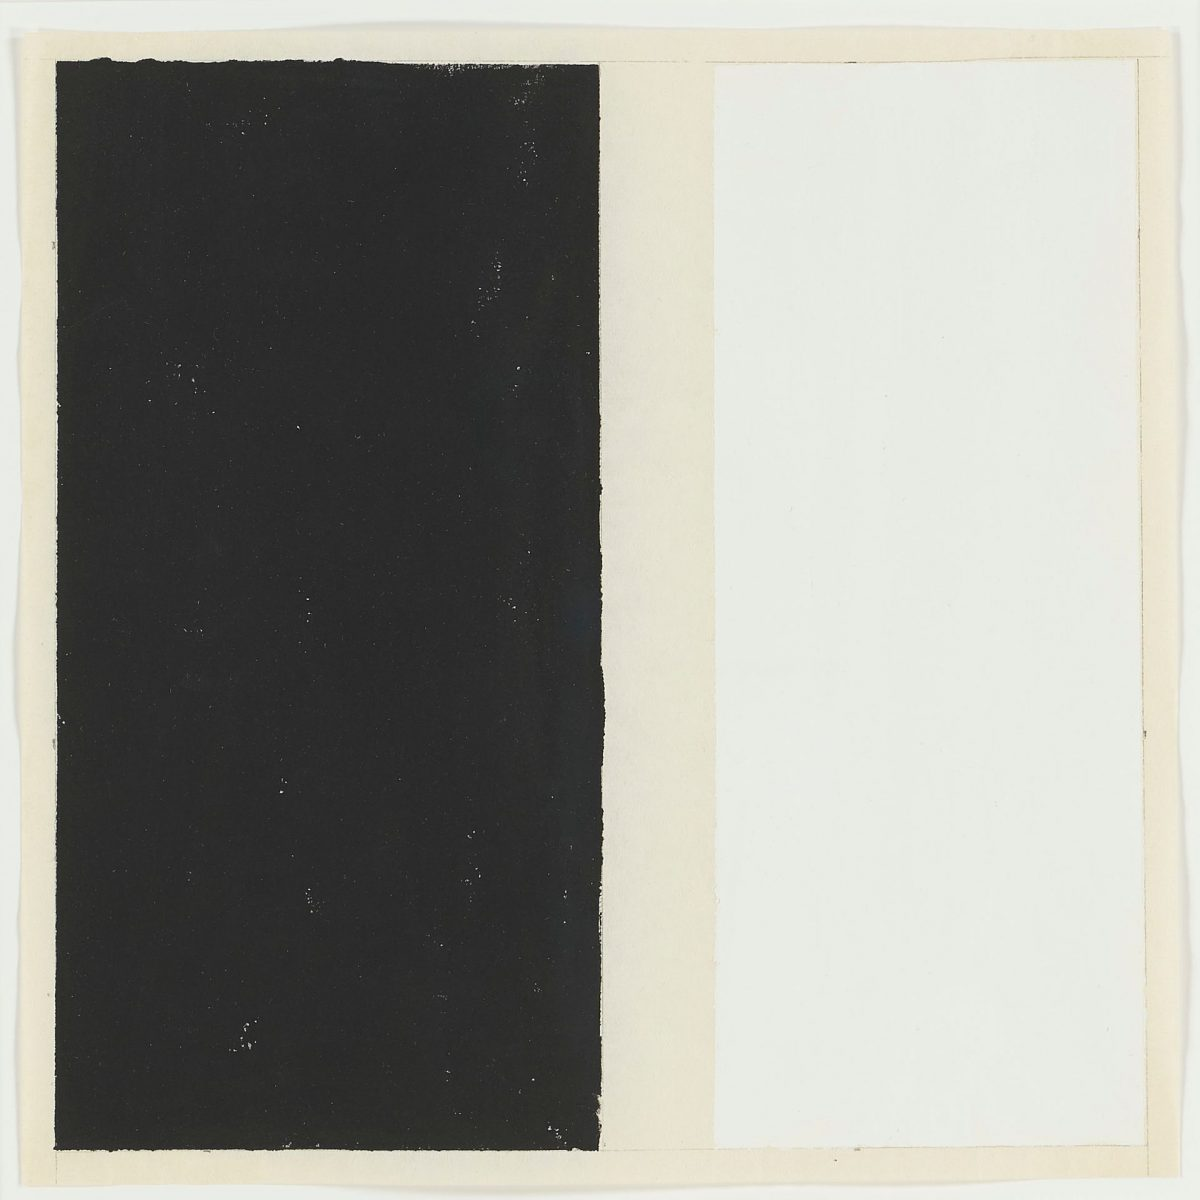 Day Dream Nation, Arnold Kemp, 9 3/8 x 9 ½ inches, graphite and Flashe on Chinese paper. An almost square work showing two upright rectangles, one black and one white, side by side. They are depicted on creamy, off-white ground that both separates and surrounds the two shapes. The black rectangle at left has slightly uneven, rough edges. Specks of white paper show through the graphite throughout the body. At right, the white rectangle is the same height as the black but is narrower and has sharper edges. The shapes are outlined faintly in a thin gray pencil line. The lines connect the two rectangles across the off-white background strip between the two.